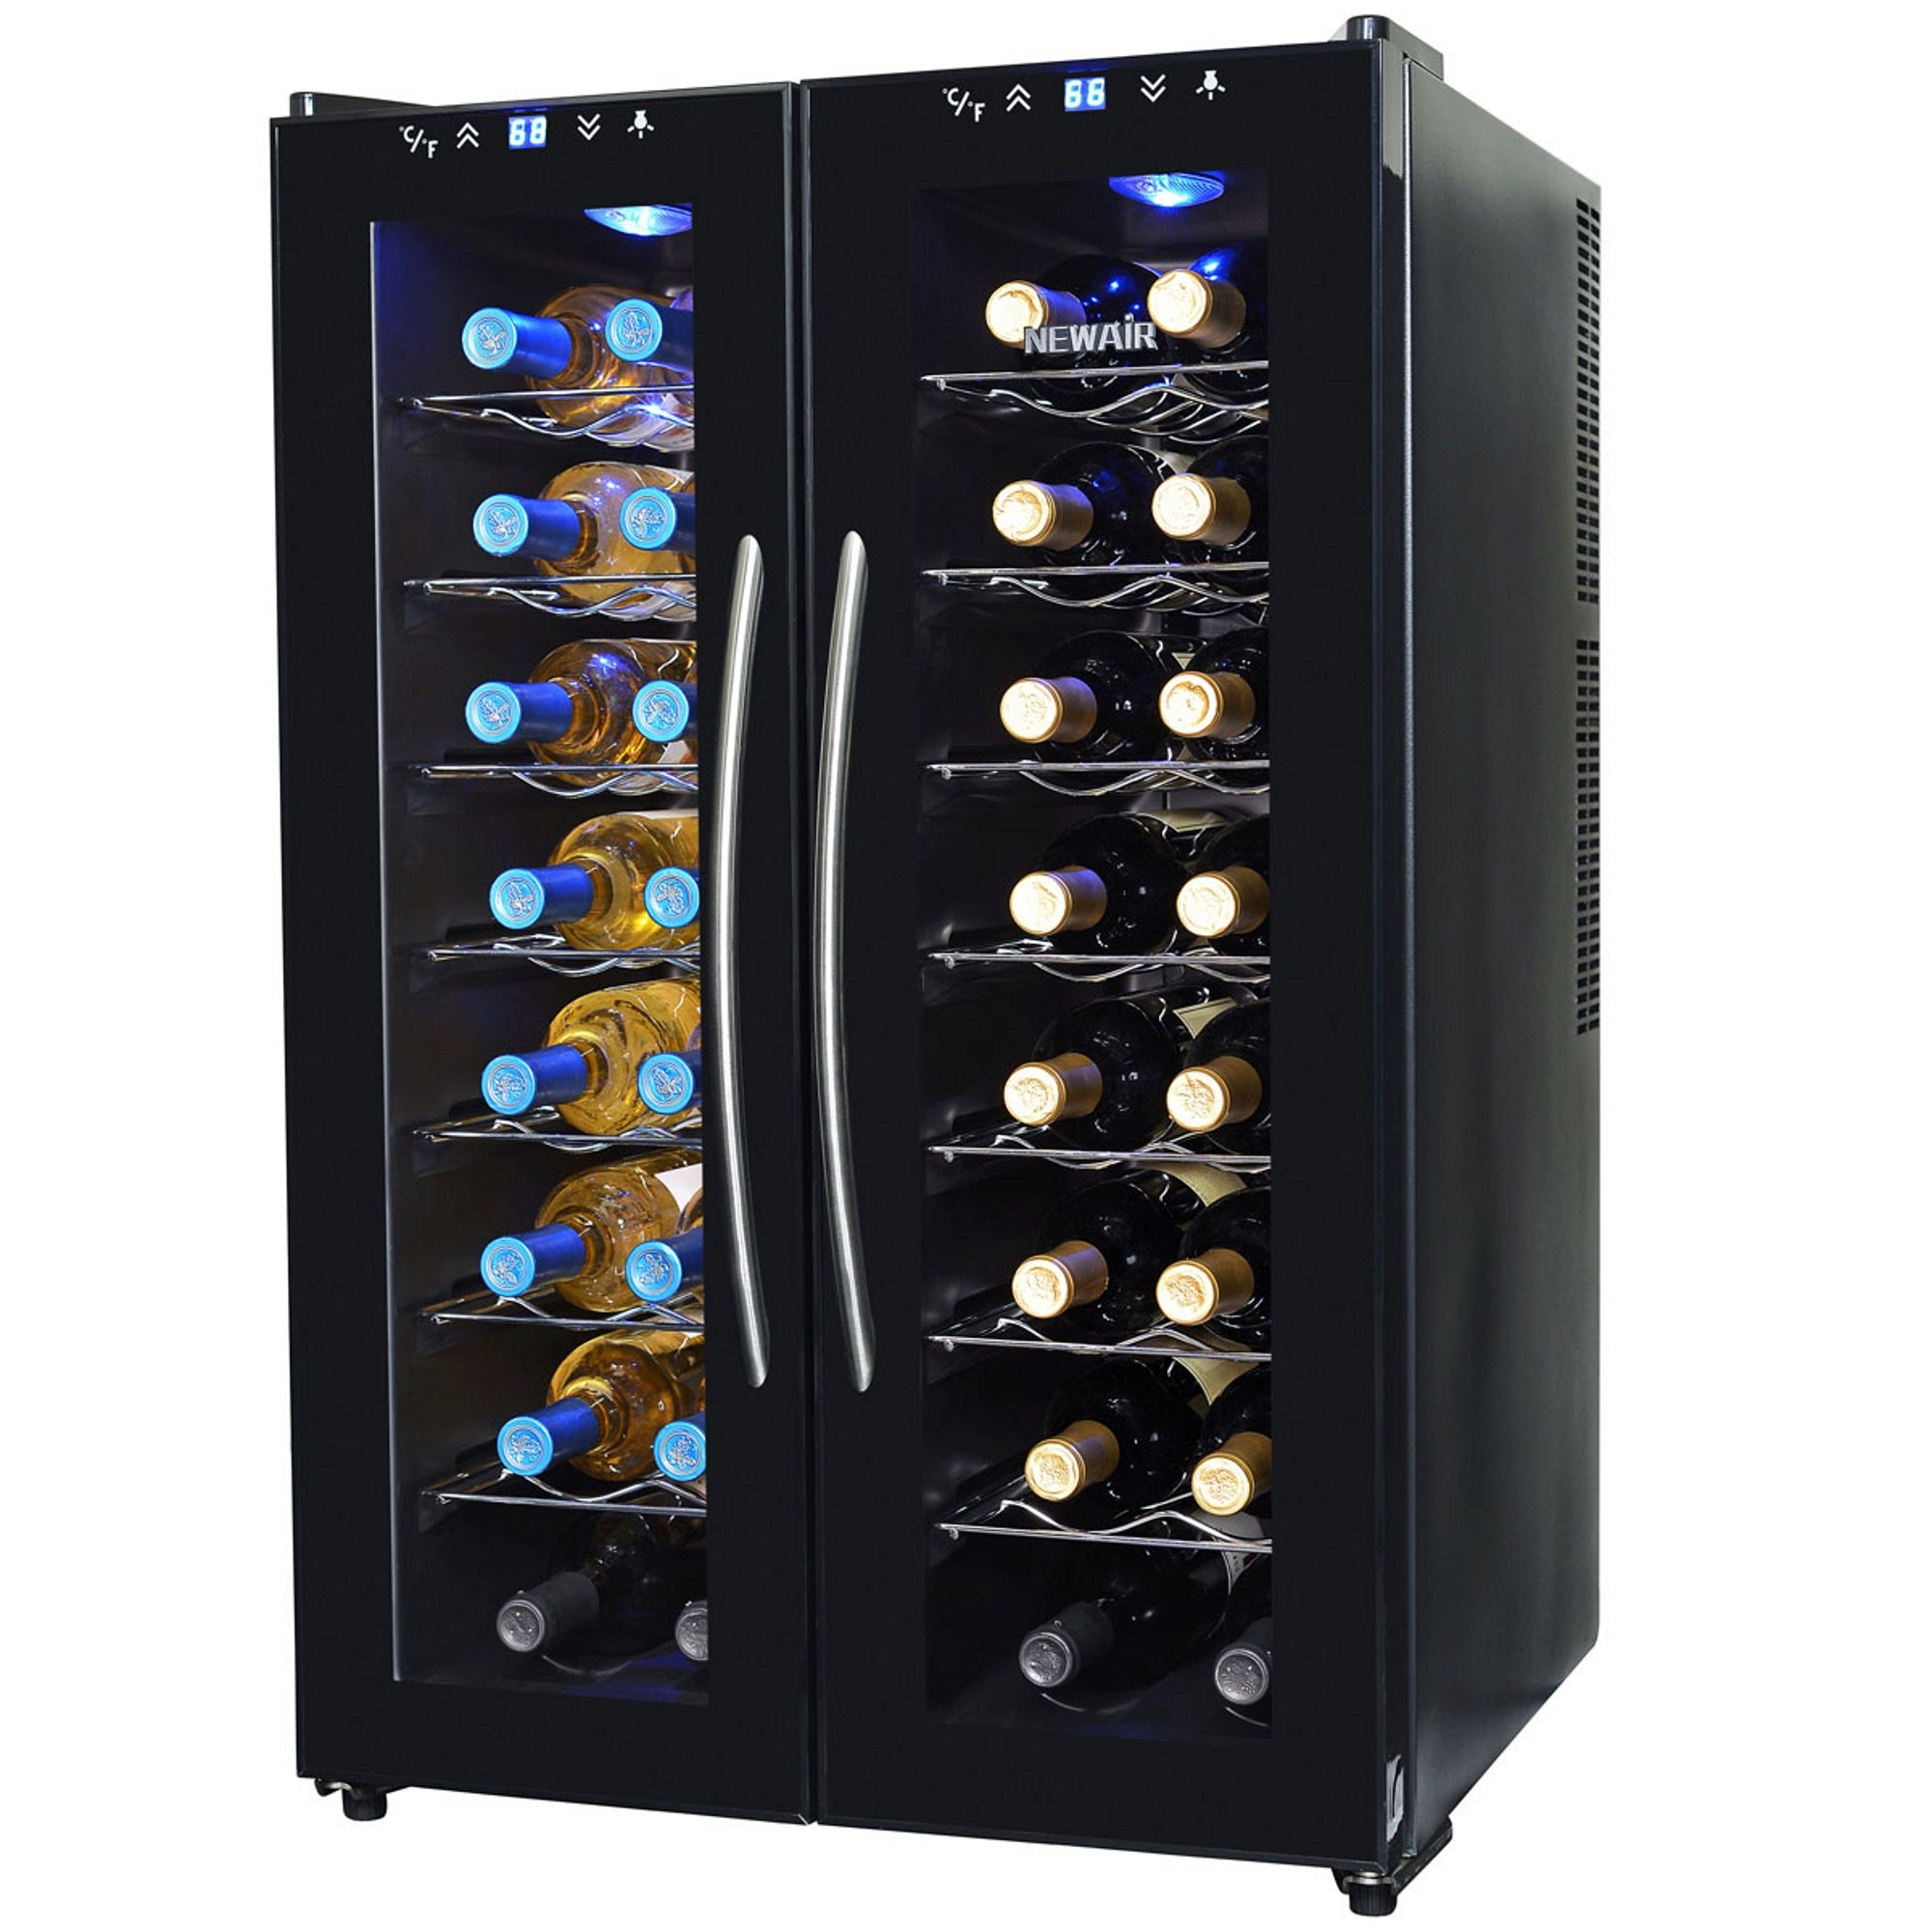 NewAir_32Bottle_Black_Dual_Zone_Wine_Cooler_|_AW320ED